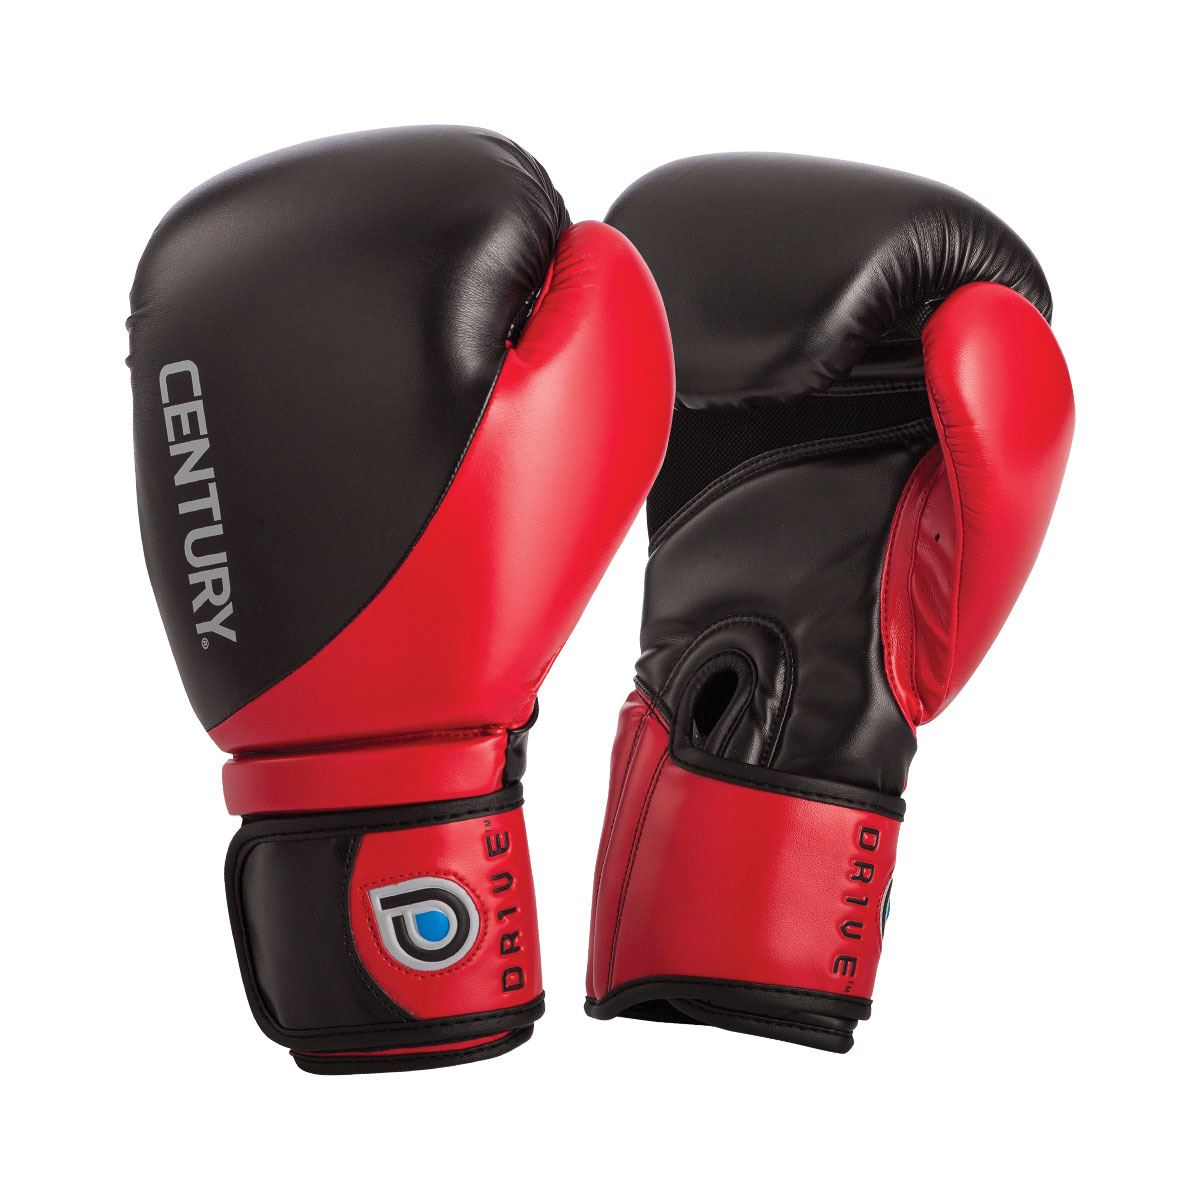 Boking Gloves: Century Drive Boxing Gloves